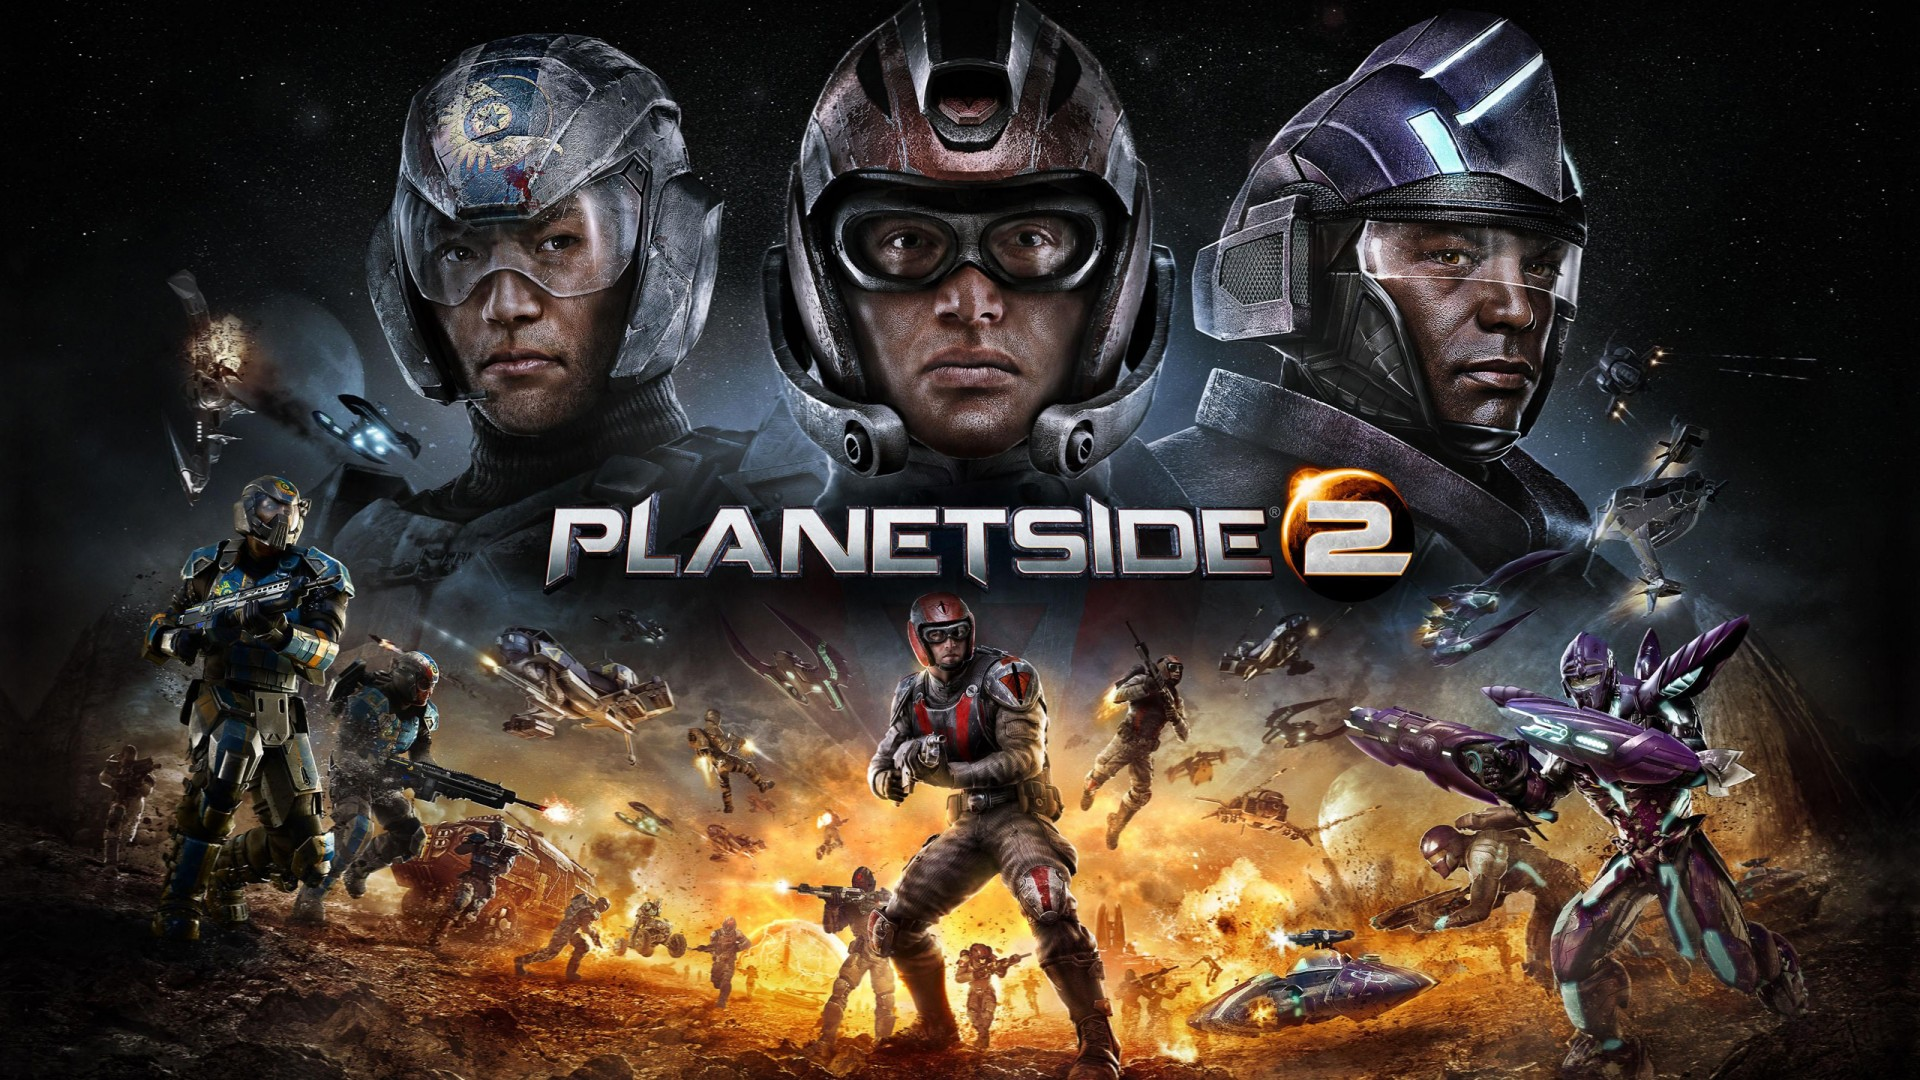 Hd Cute Wallpapers 1080p Planetside 2 Game Wallpapers Hd Wallpapers Id 11658